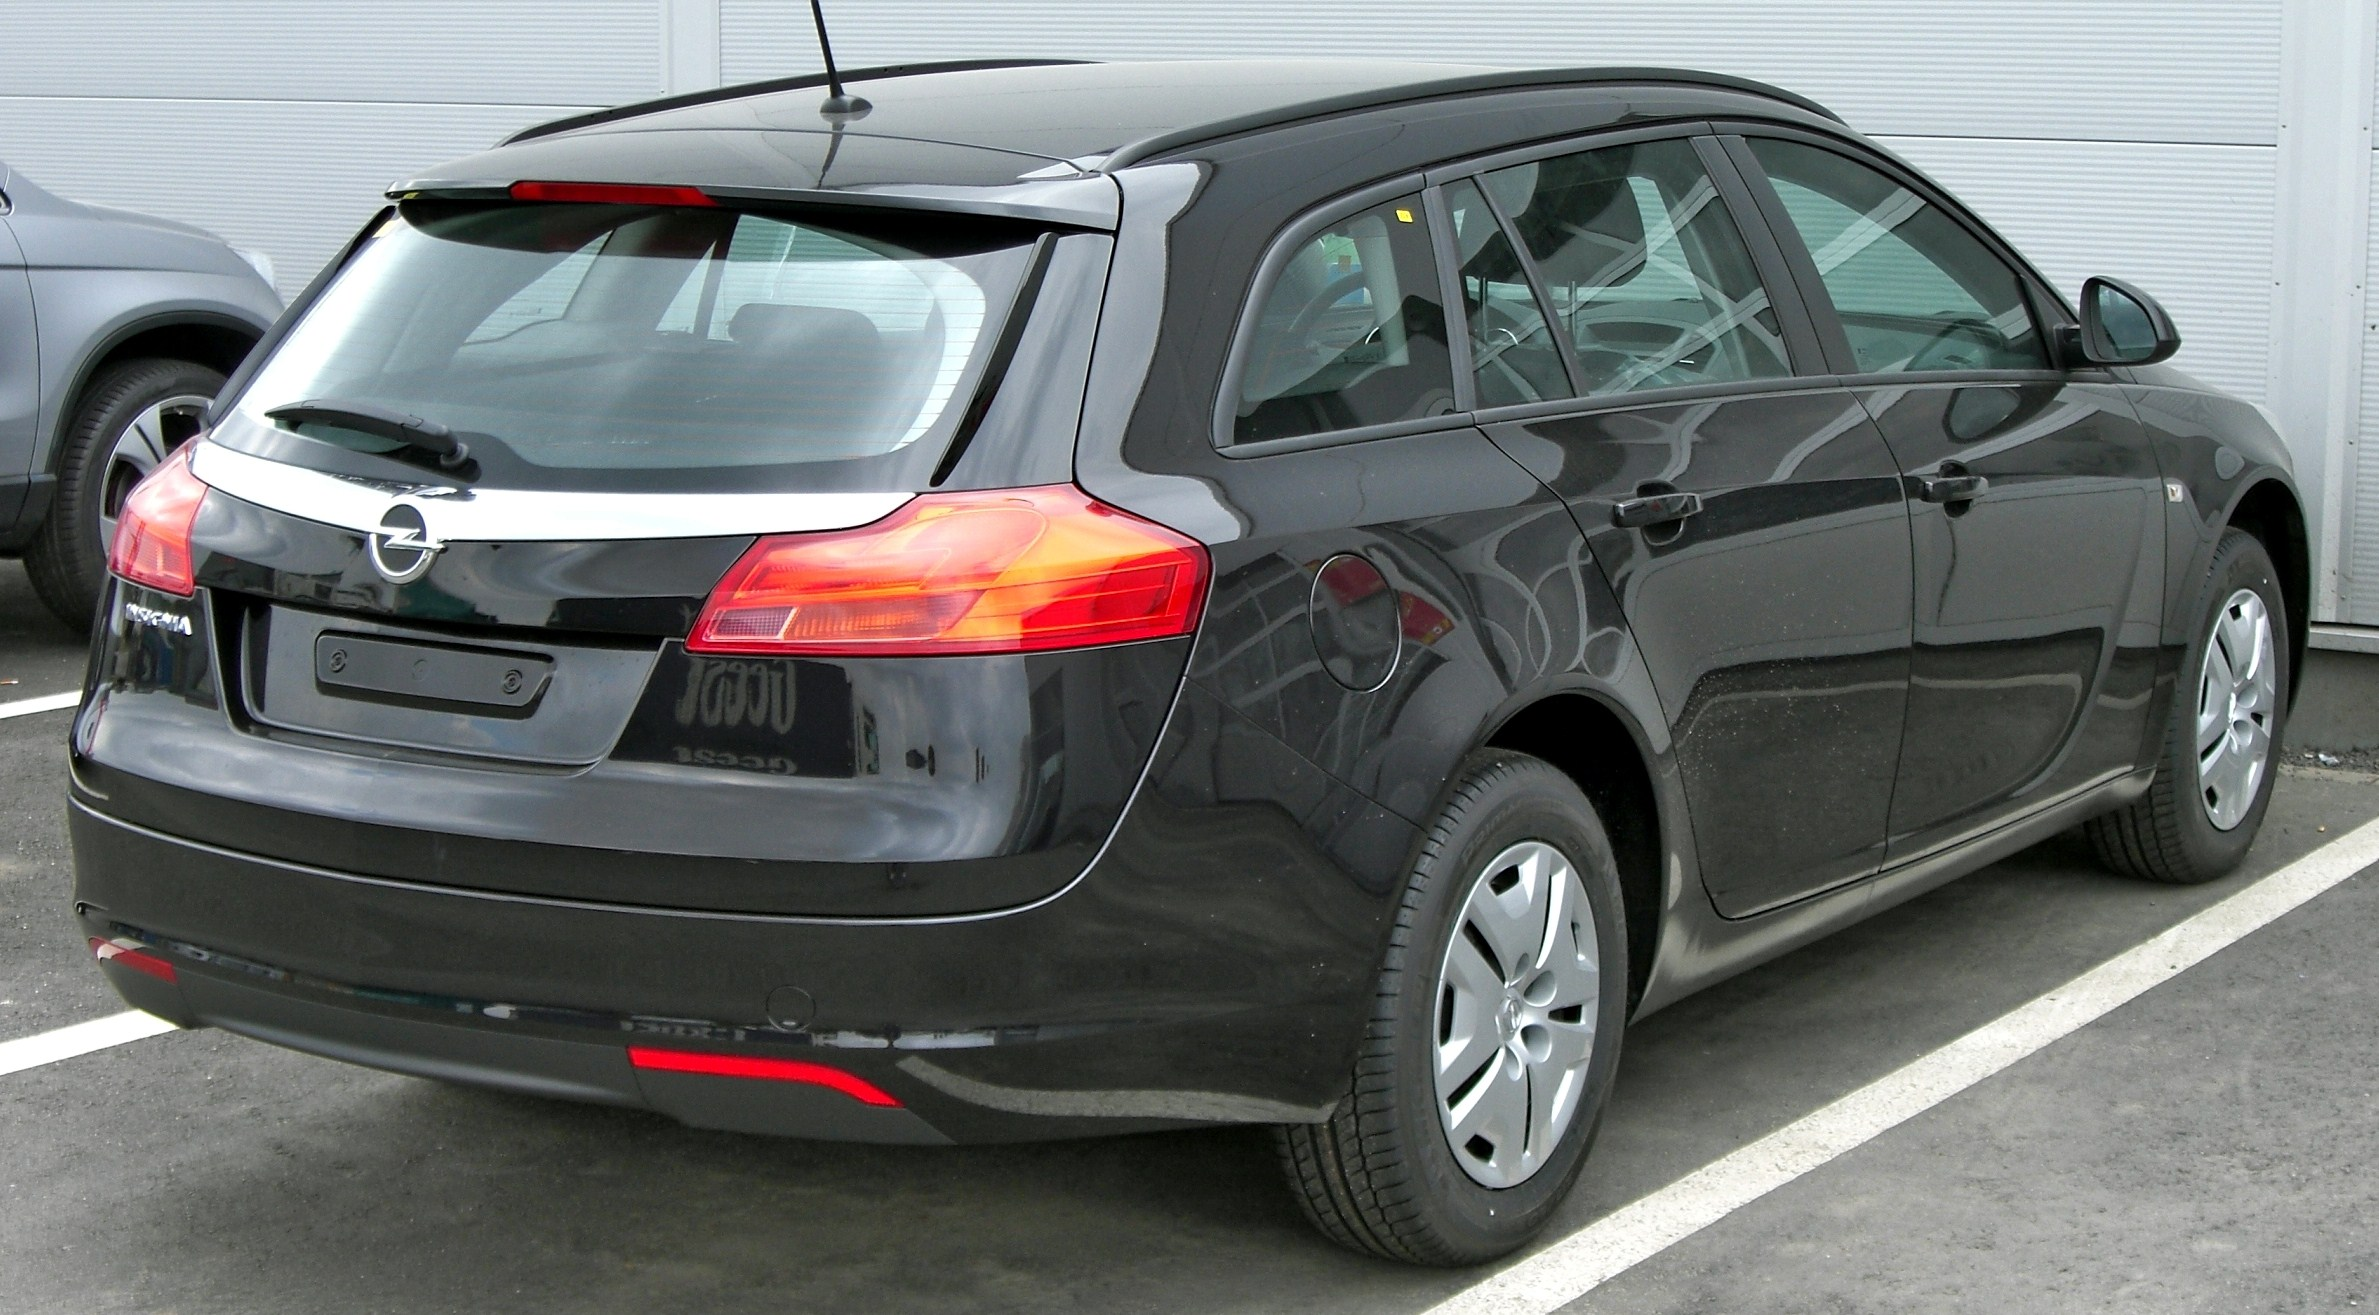 OPEL TOURER black